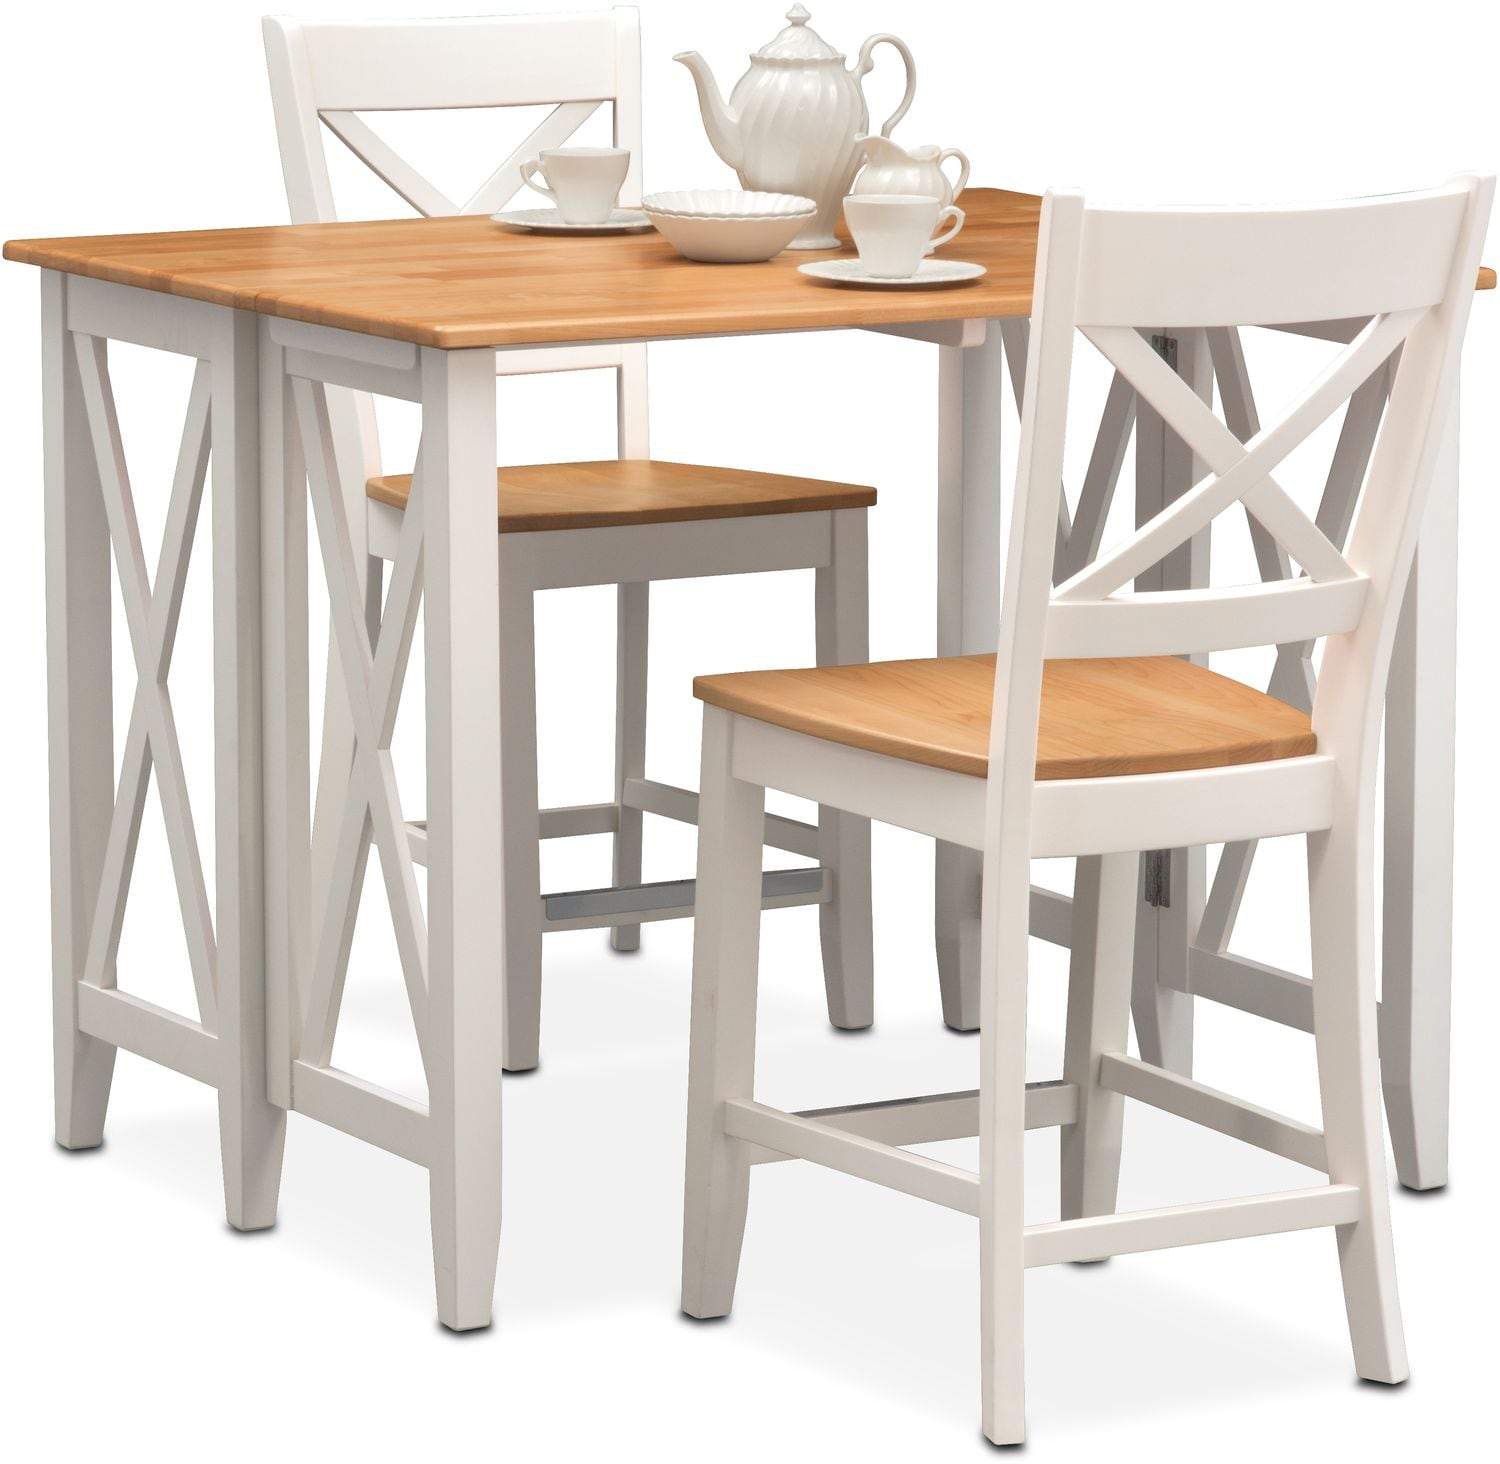 Nantucket Breakfast Bar And 2 Counter Height Side Chairs   Maple And White